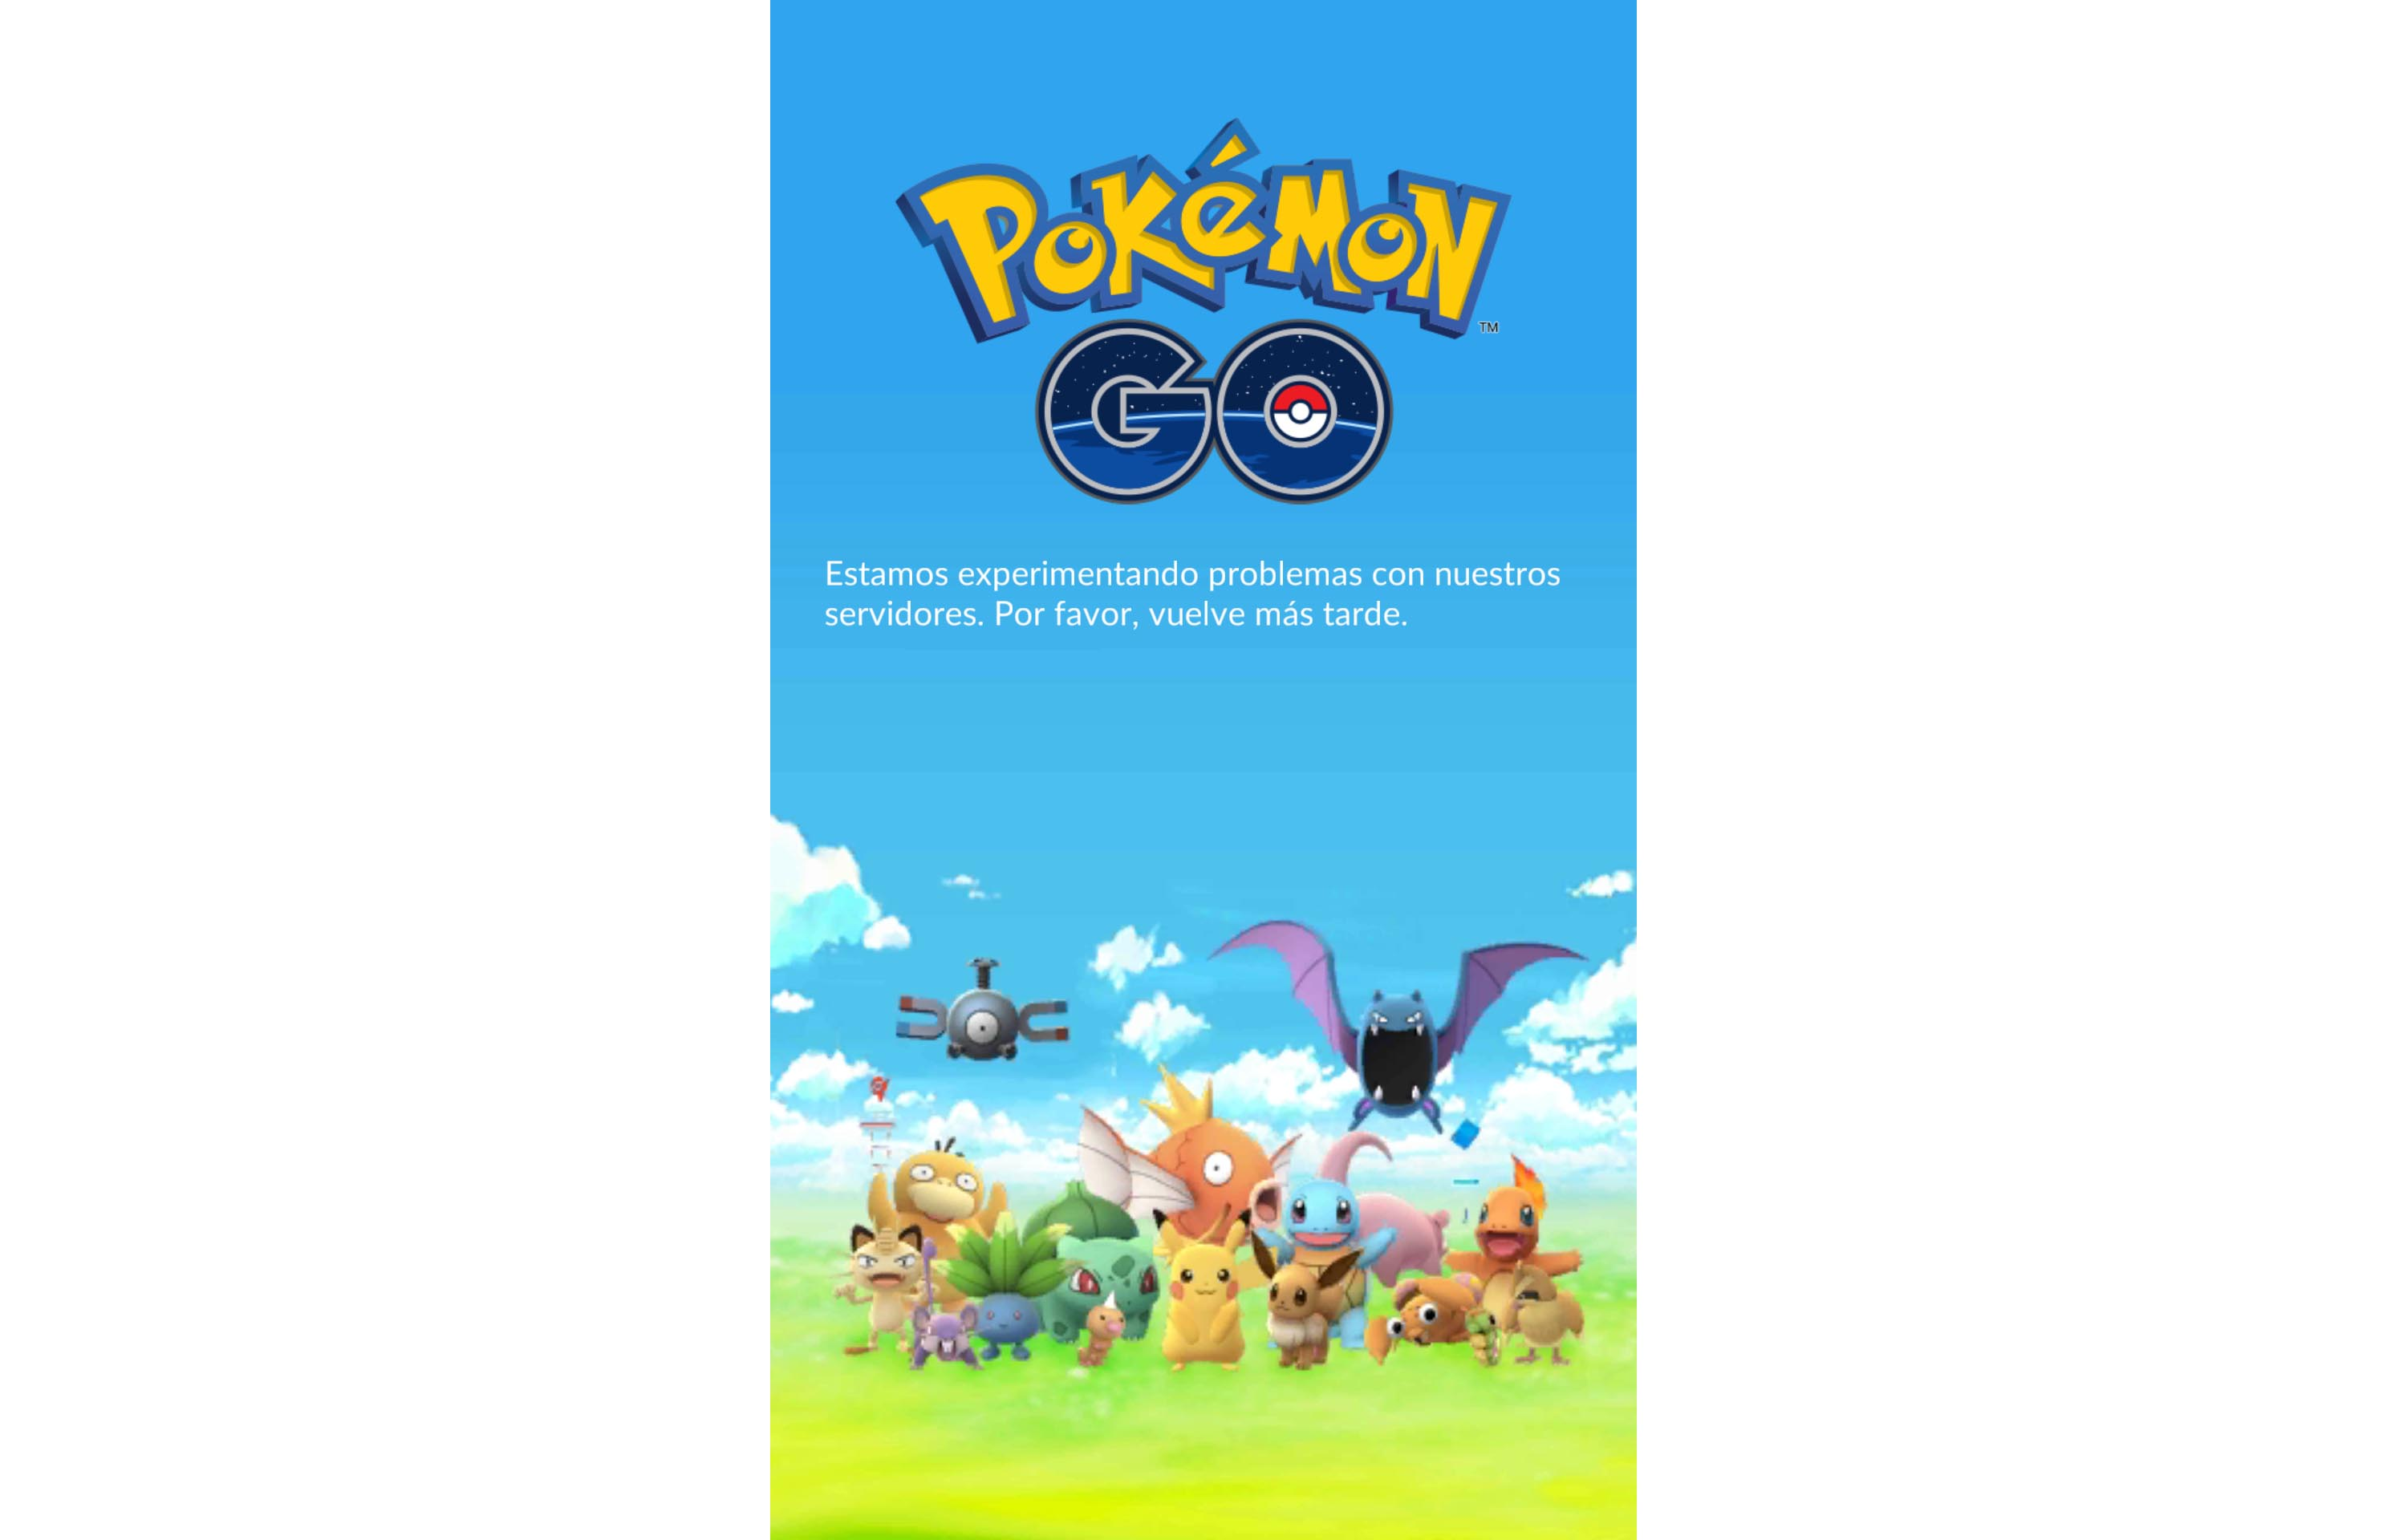 pokemon go servidores Screenshot_2016-07-19-16-16-56_com.nianticlabs